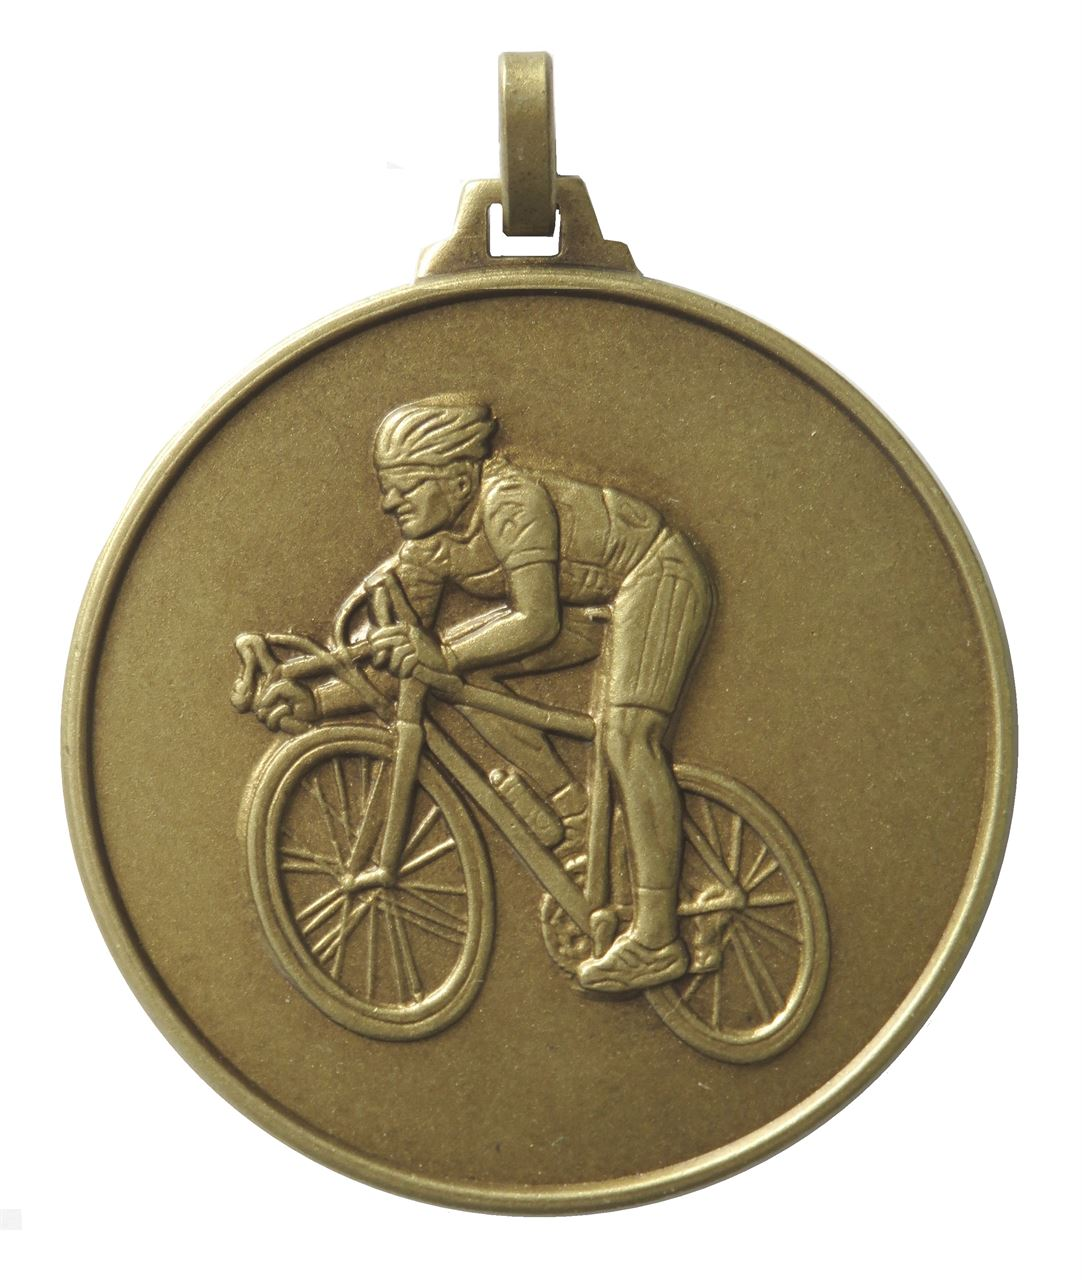 Bronze Economy Cycling Medal (size: 52mm) - 196E